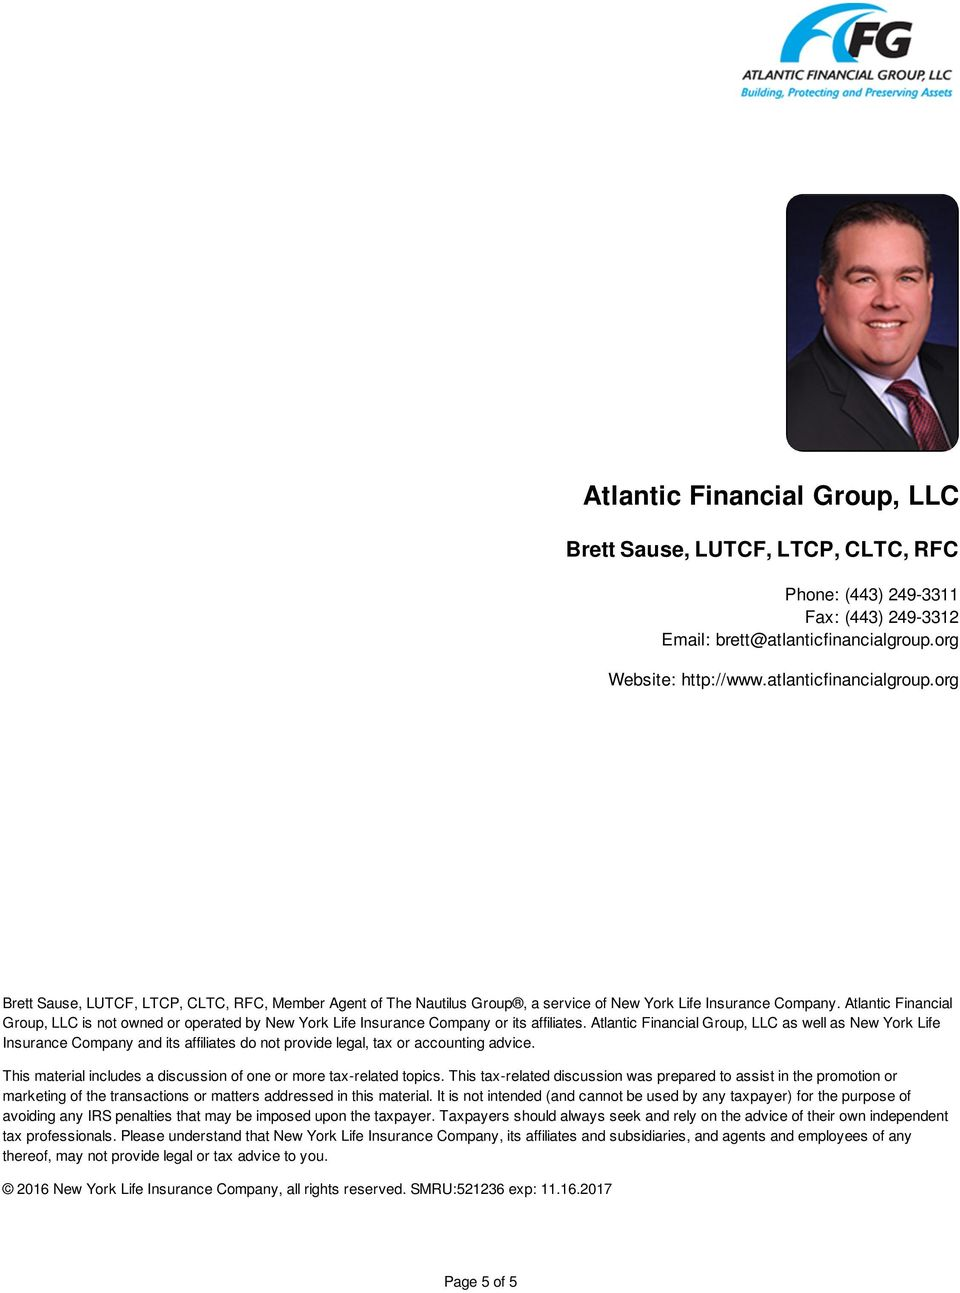 Atlantic Financial Group, LLC is not owned or operated by New York Life Insurance Company or its affiliates.